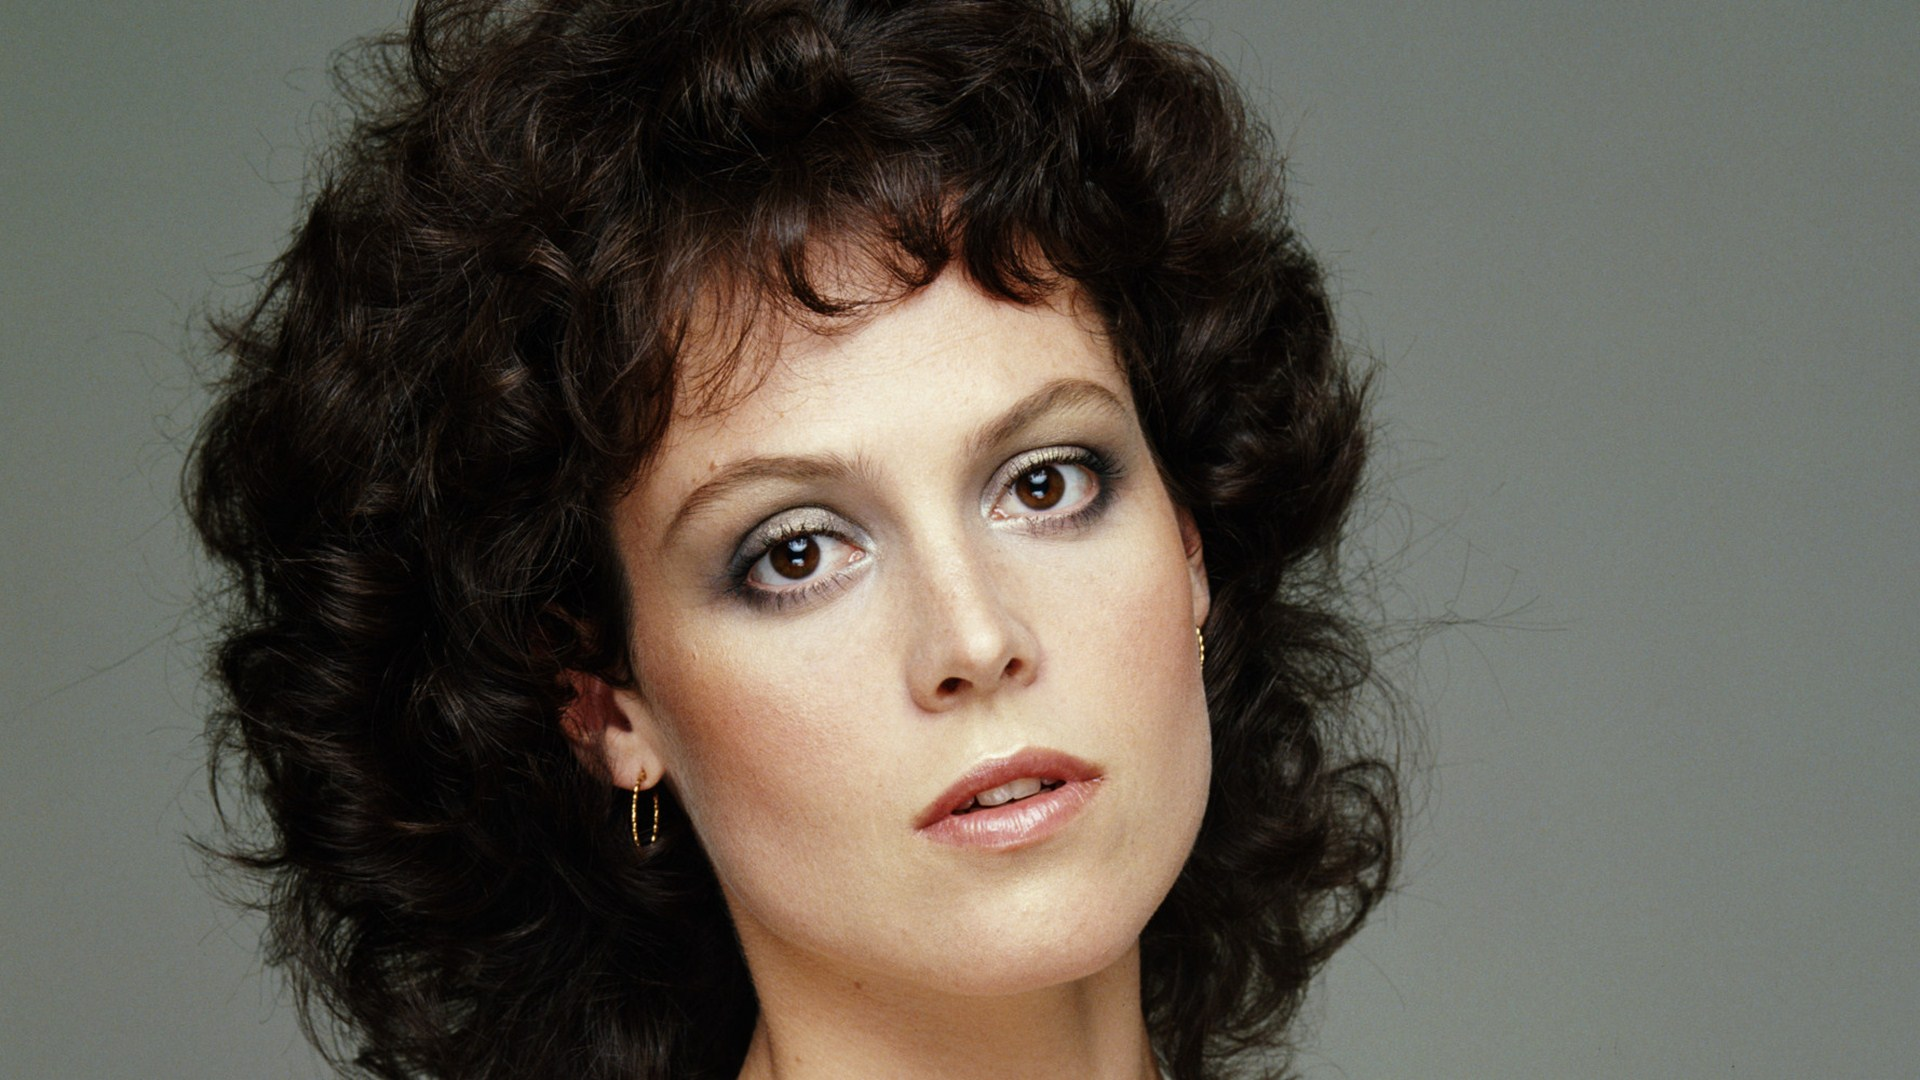 7 Hd Sigourney Weaver Wallpapers-1386